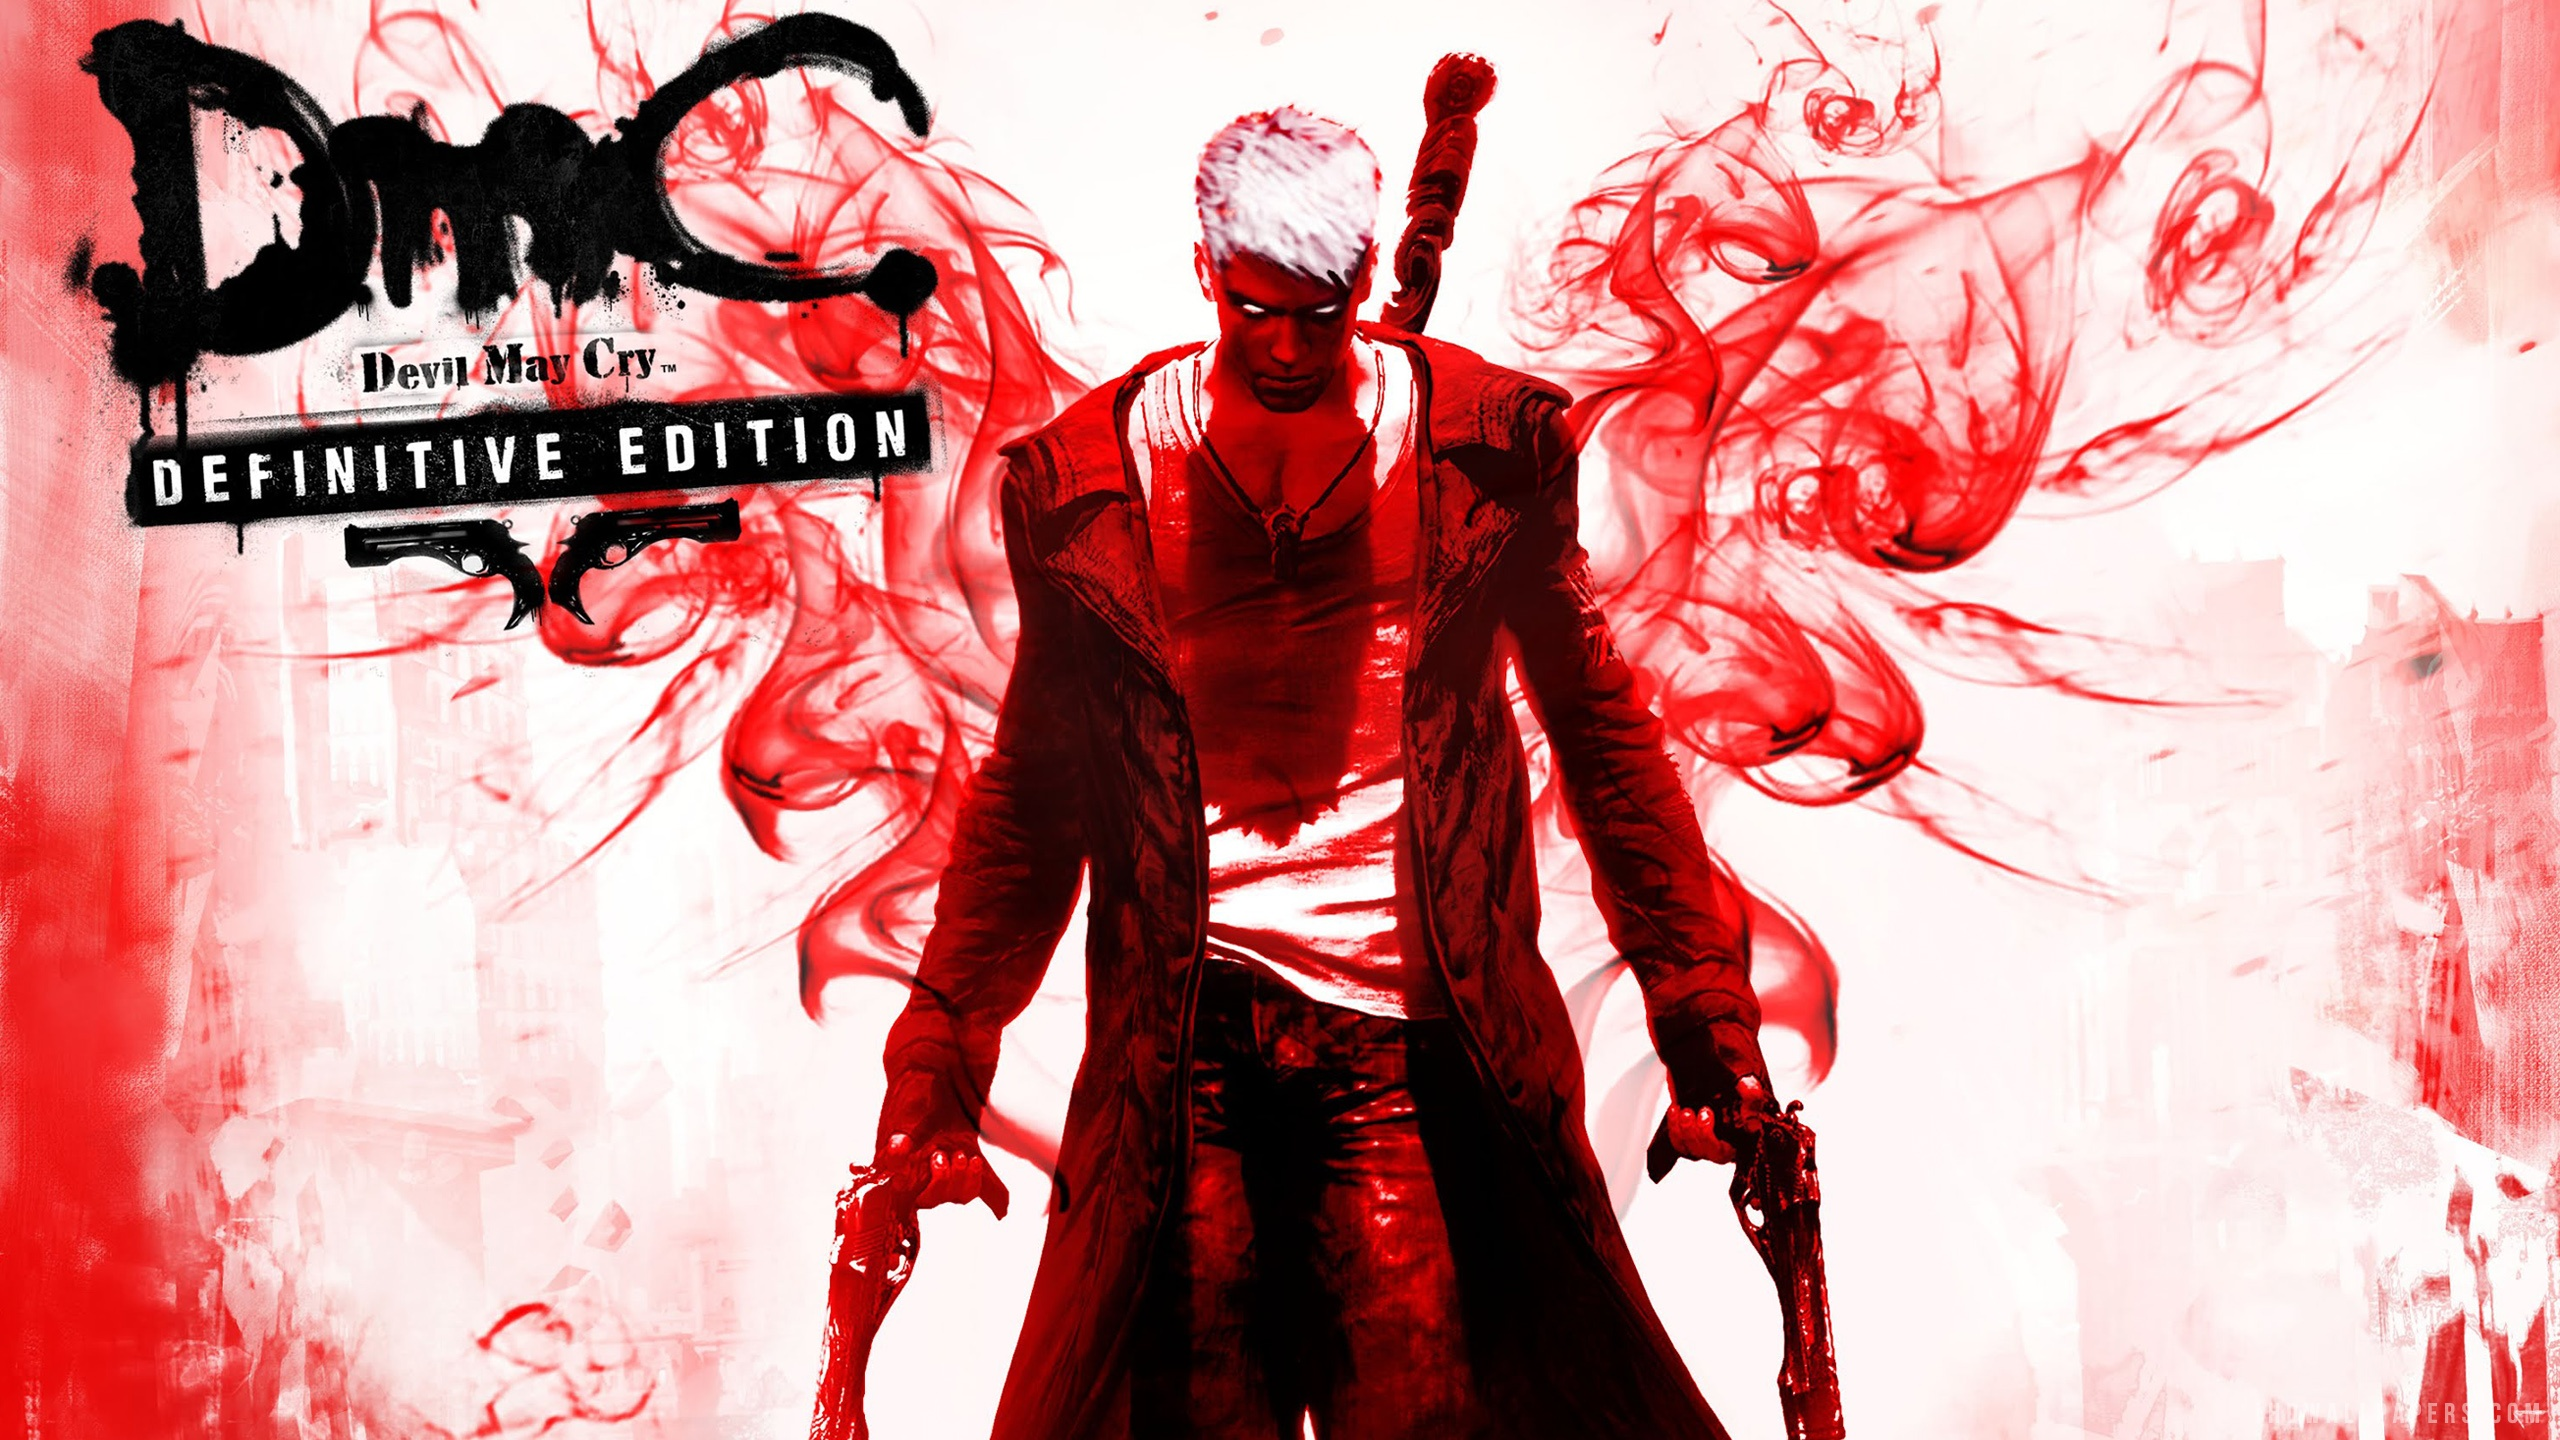 Devil May Cry Definitive